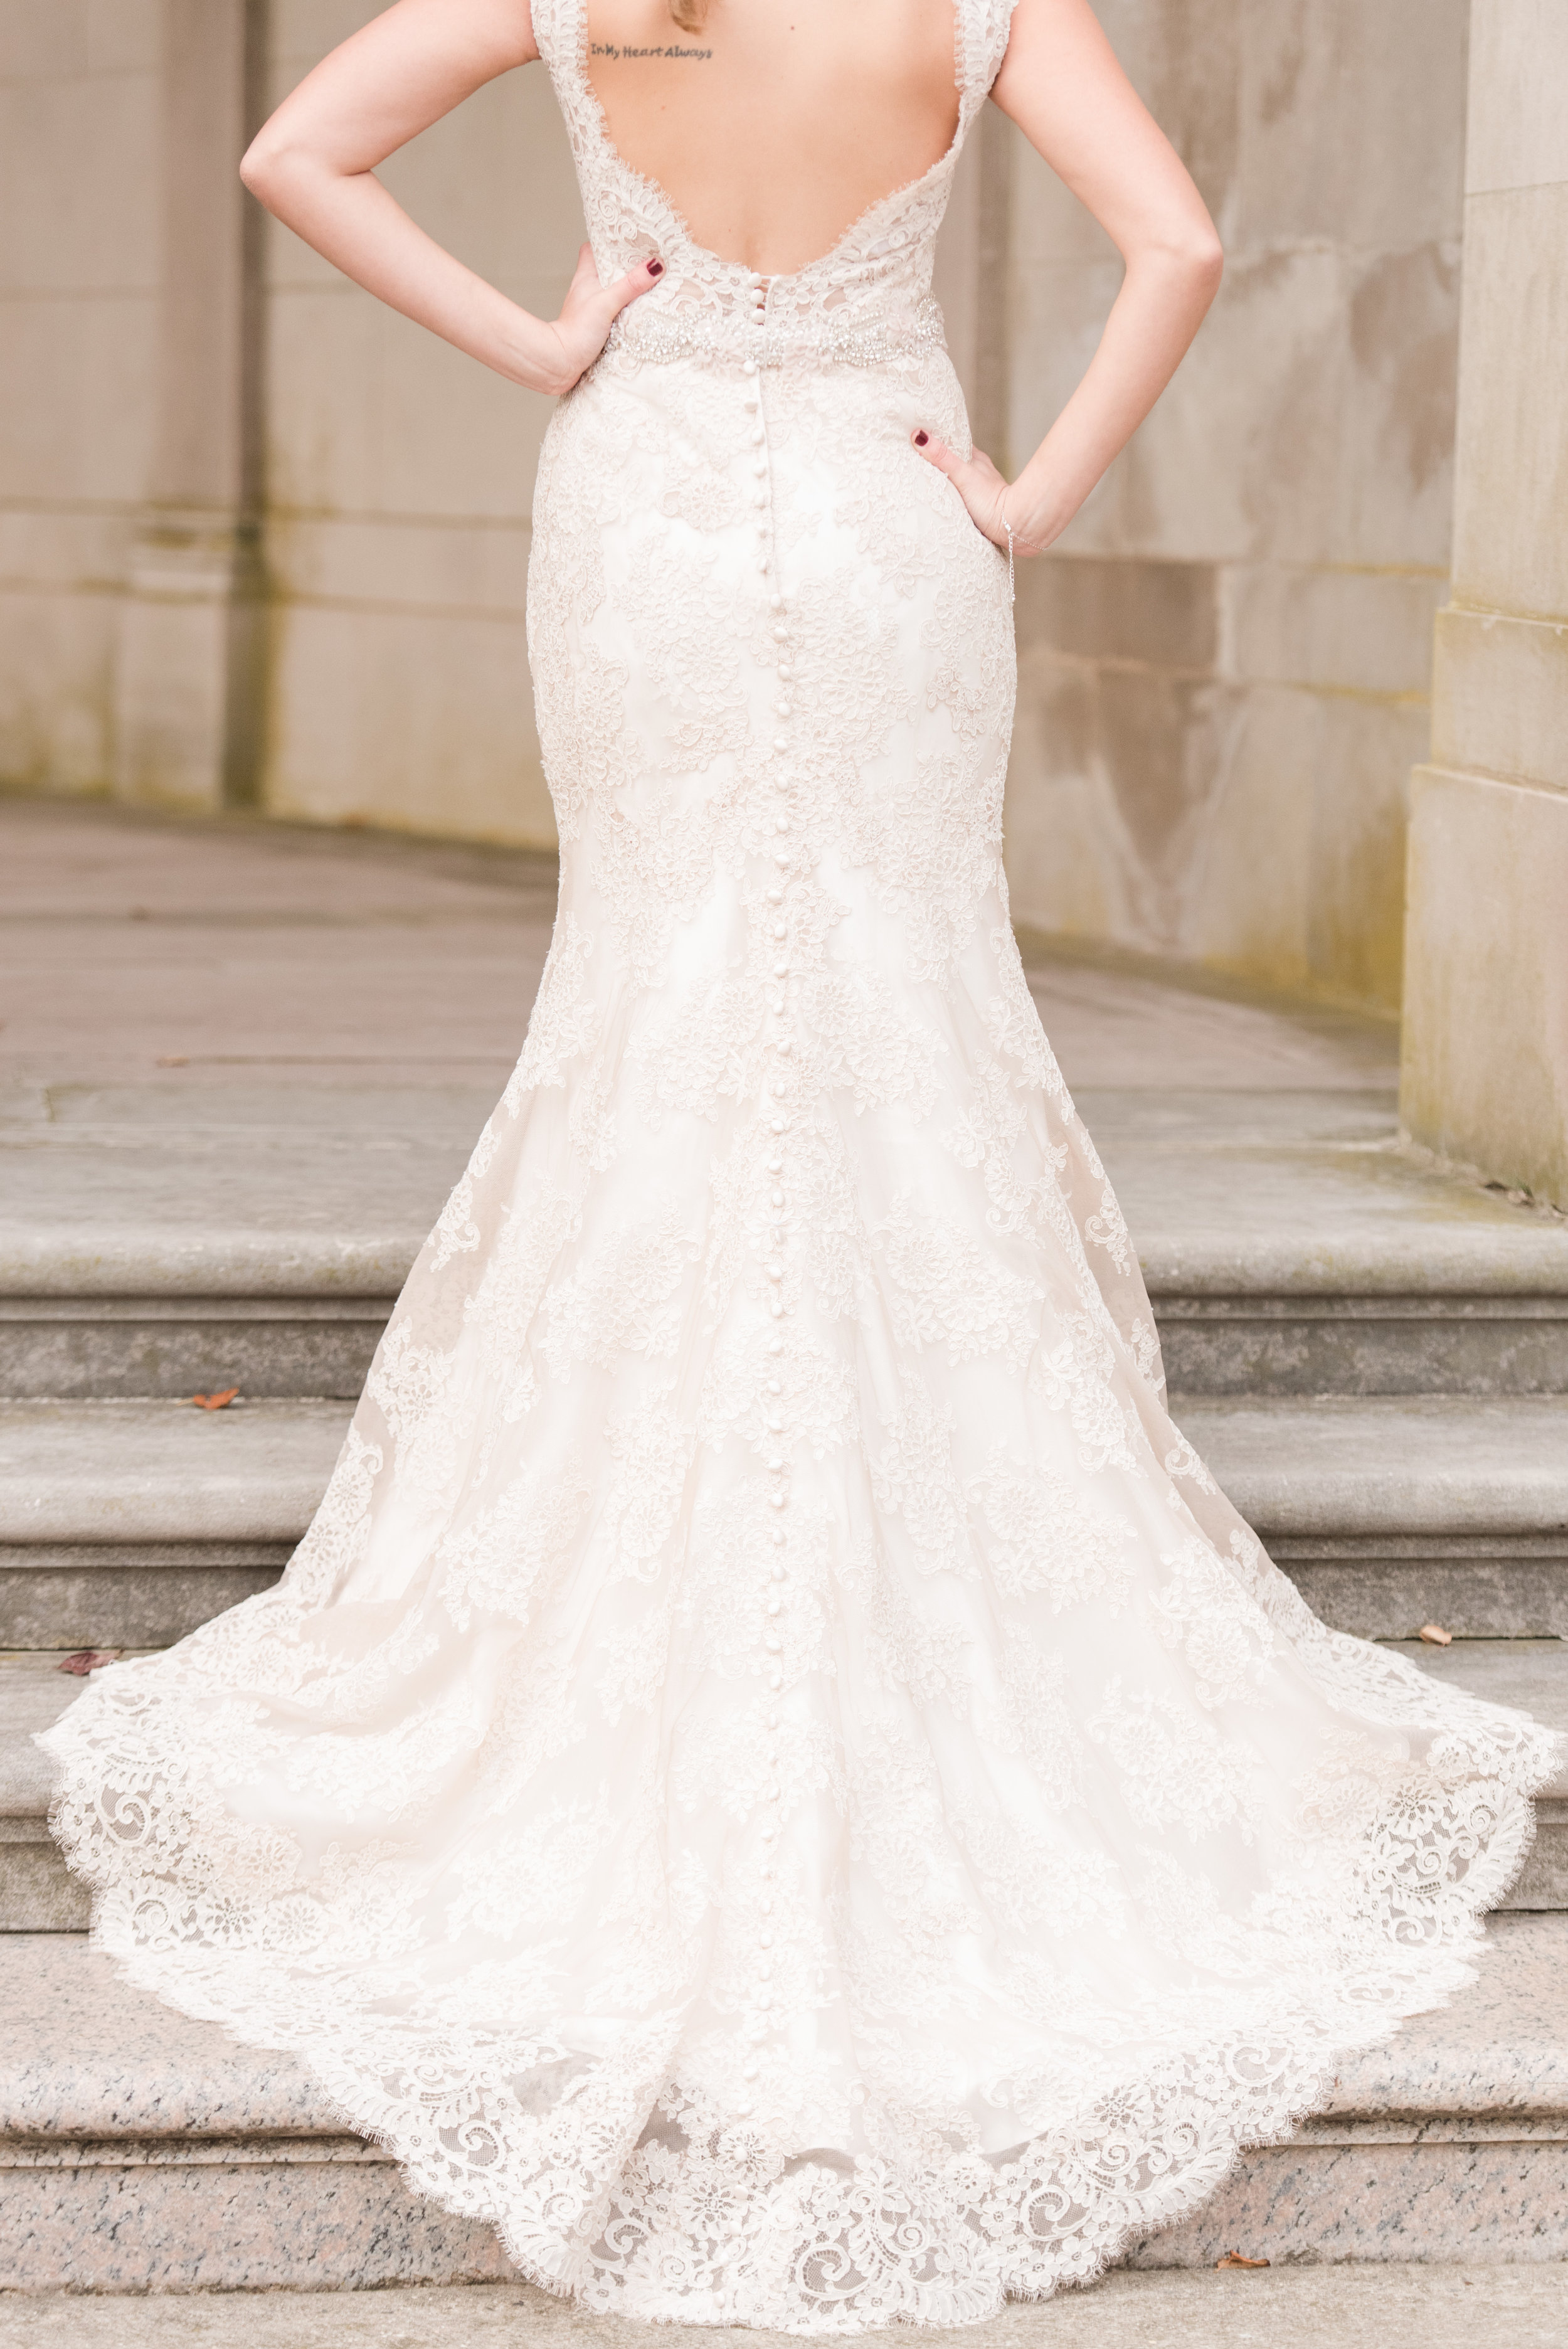 Allure bridal lace wedding dress with low back and buttons down the back